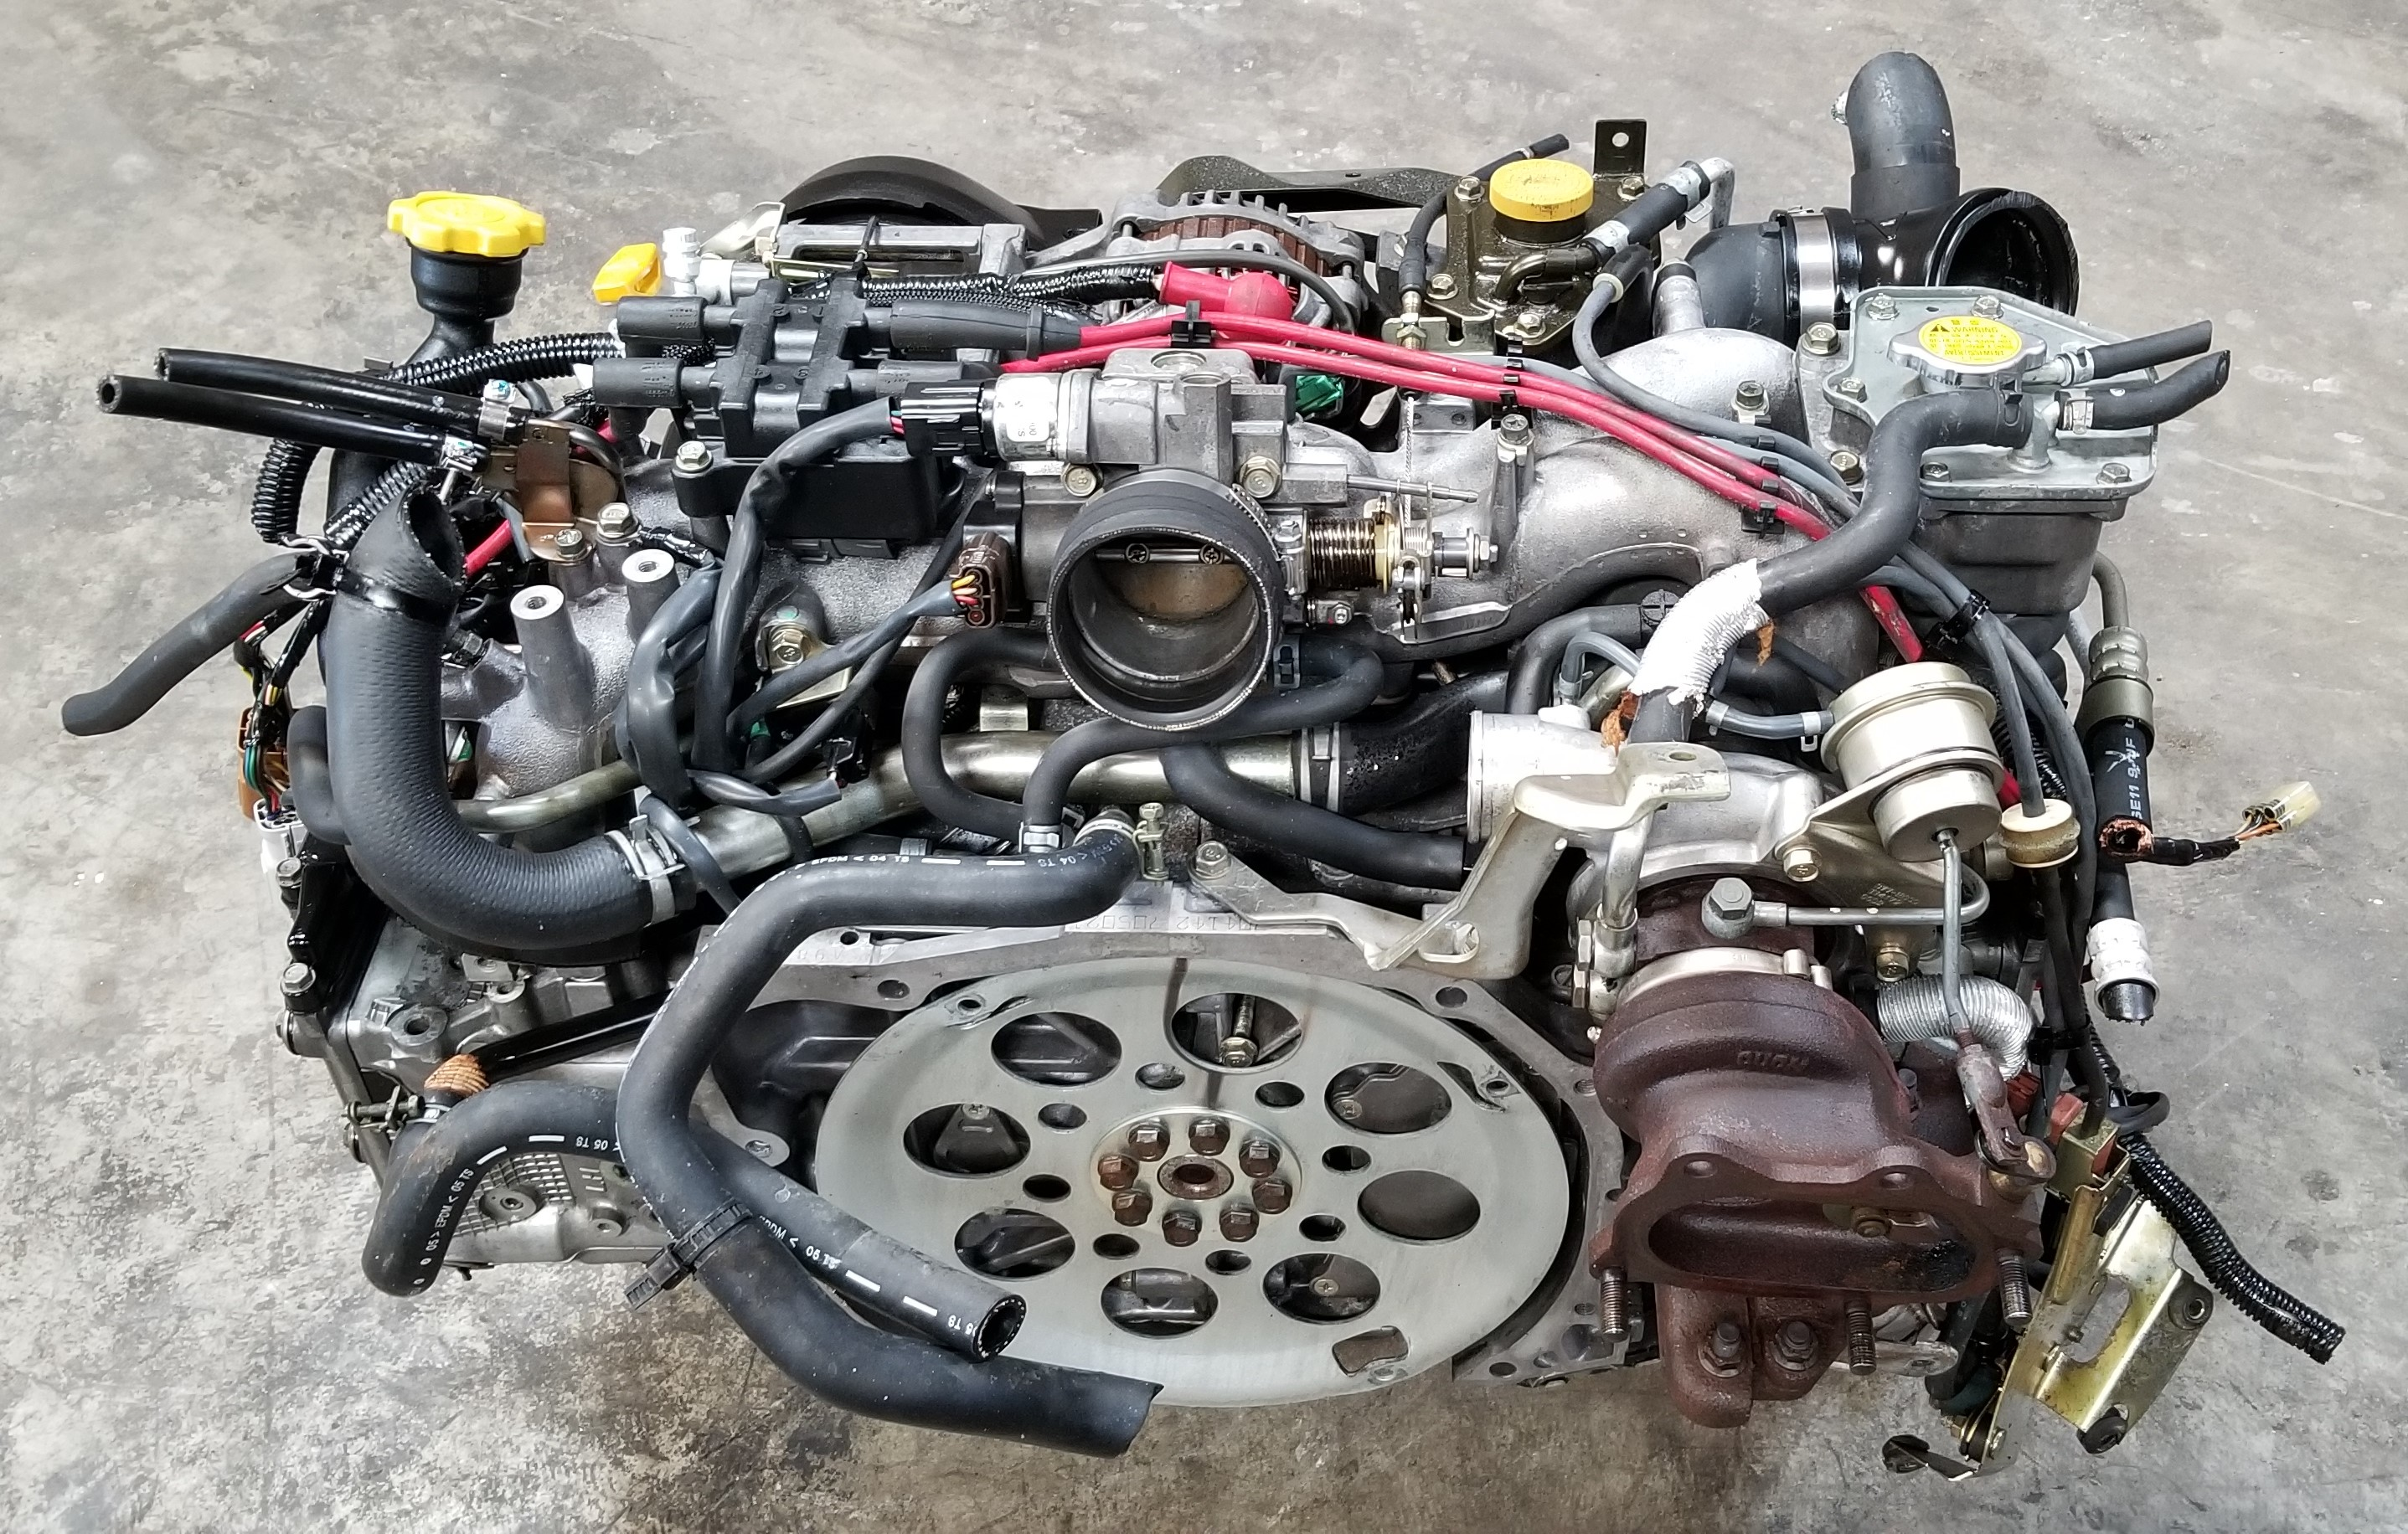 ej205 jdm engine 02 05 subaru forester impreza wrx complete motor turbo 2 0l sf5 jdm of san diego. Black Bedroom Furniture Sets. Home Design Ideas